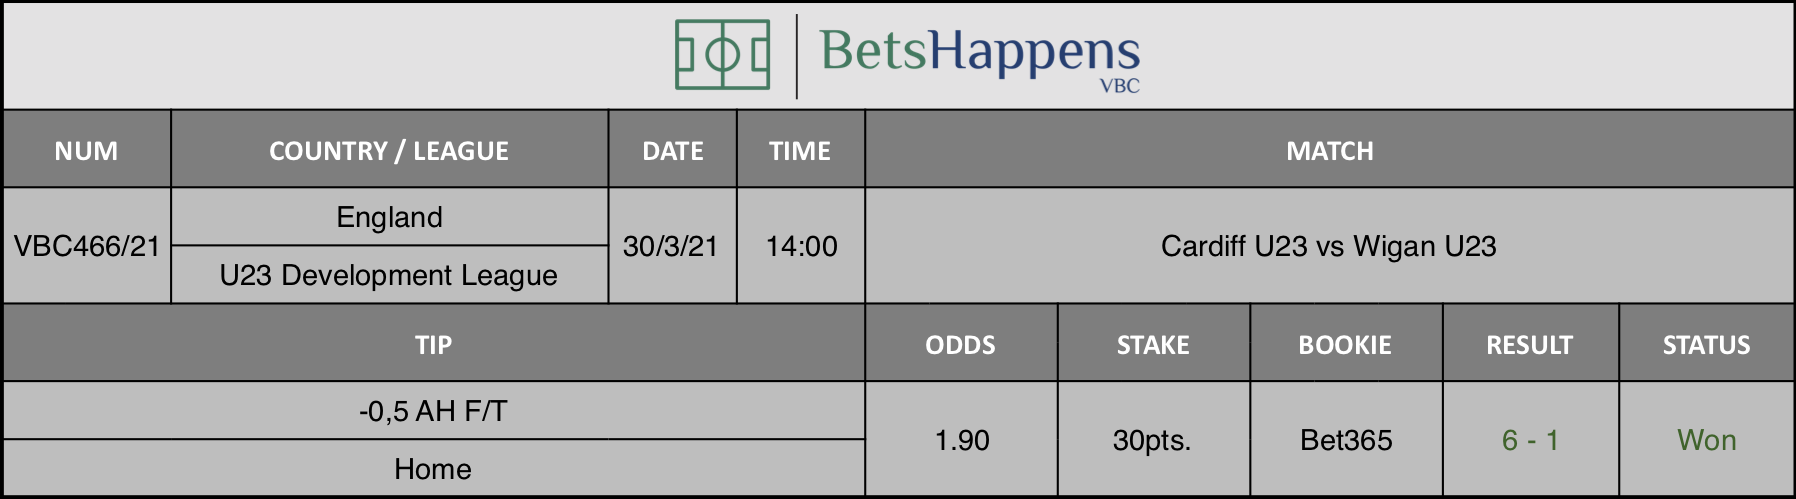 Results of our tip for the Cardiff U23 vs Wigan U23 match where -0,5 AH F/T Home is recommended.